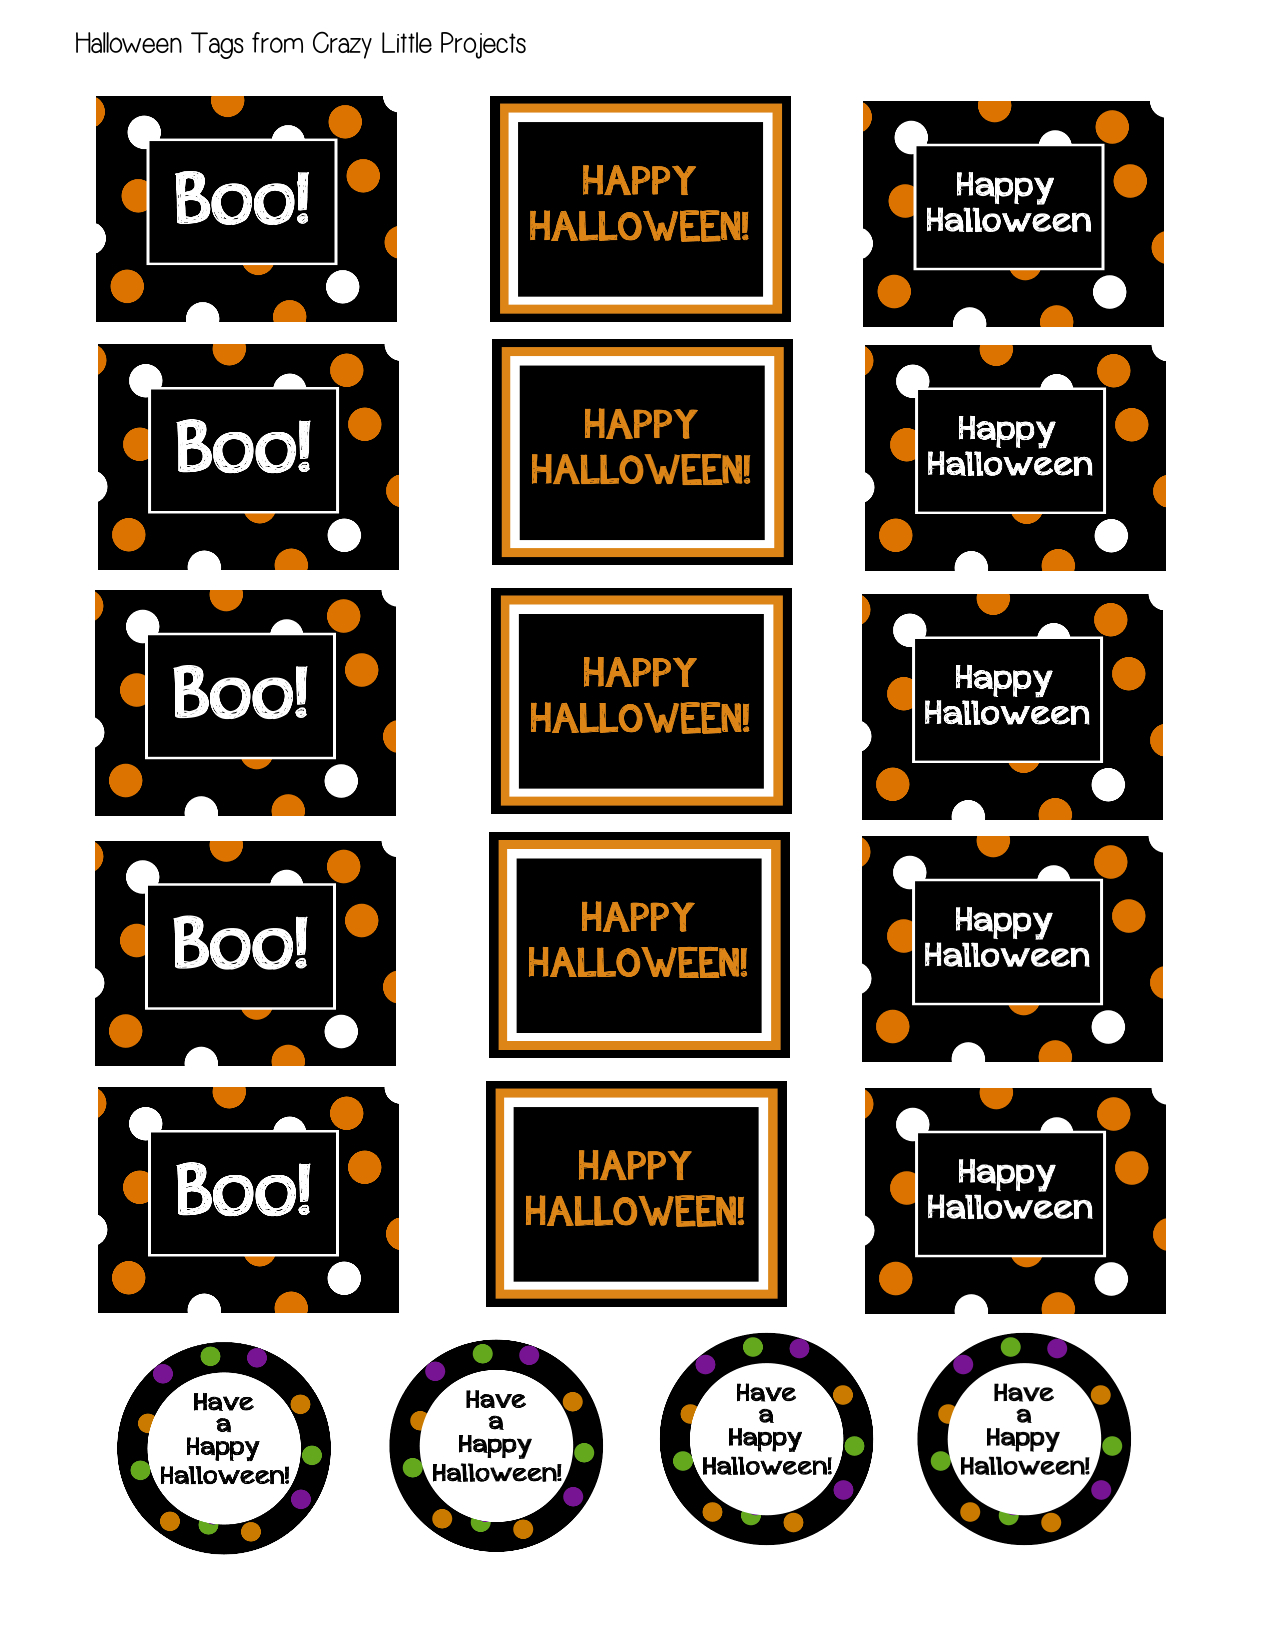 graphic about Printable Halloween Gift Tags named No cost Halloween Printable Present Tags - Nuts Tiny Assignments